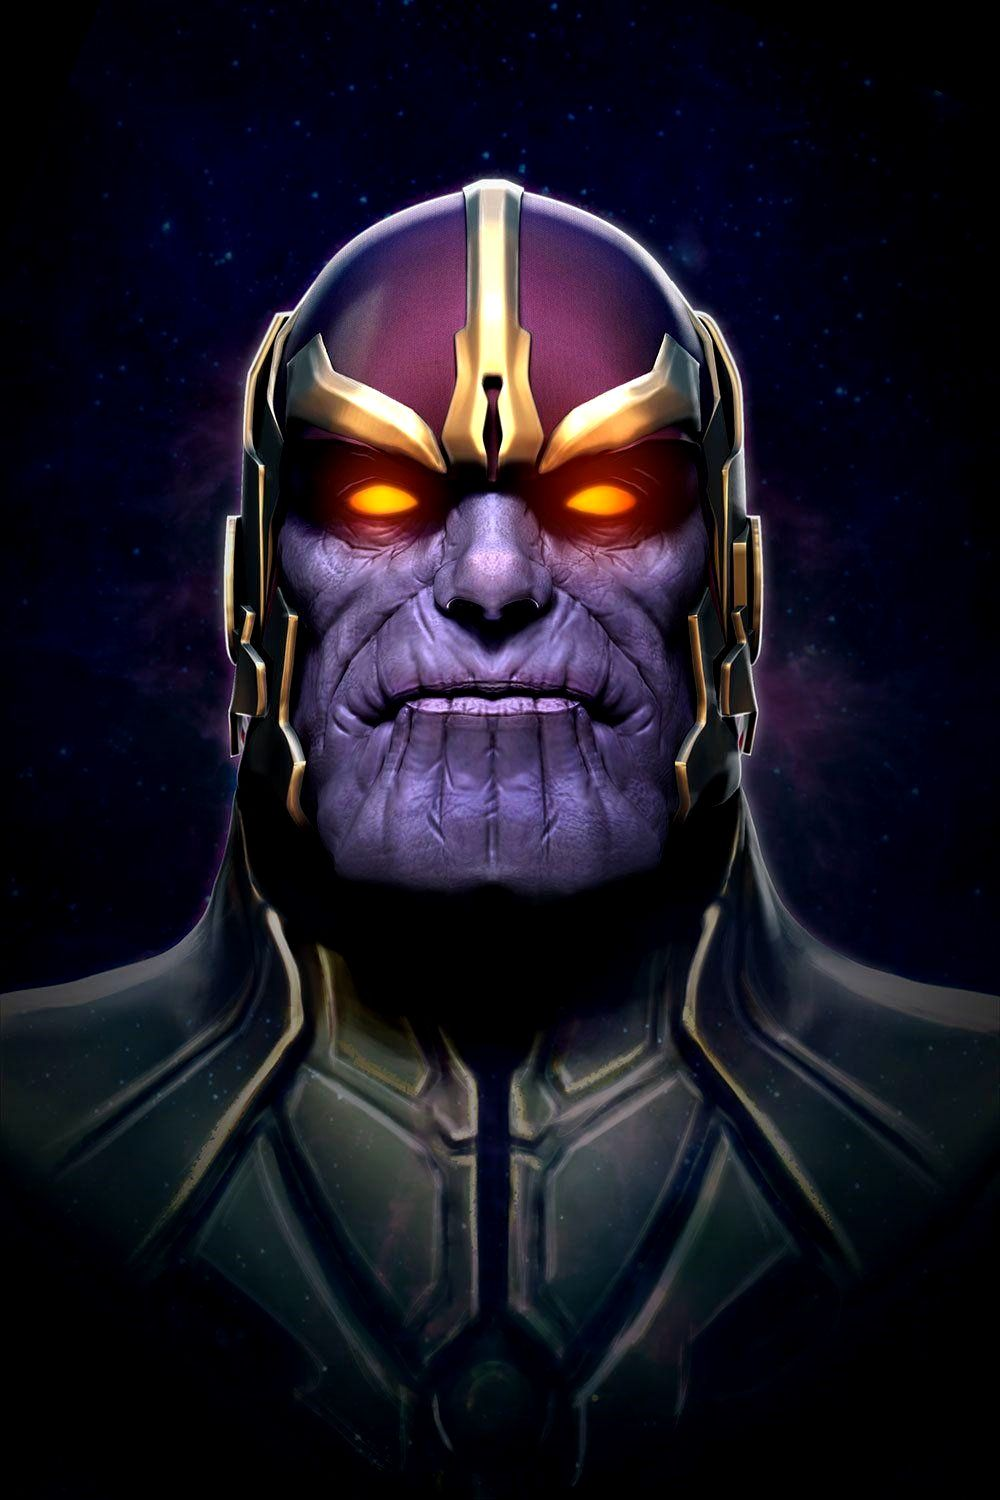 Thanos Wallpaper 4k Iphone Gallery Marvel Villains Marvel Thanos Marvel